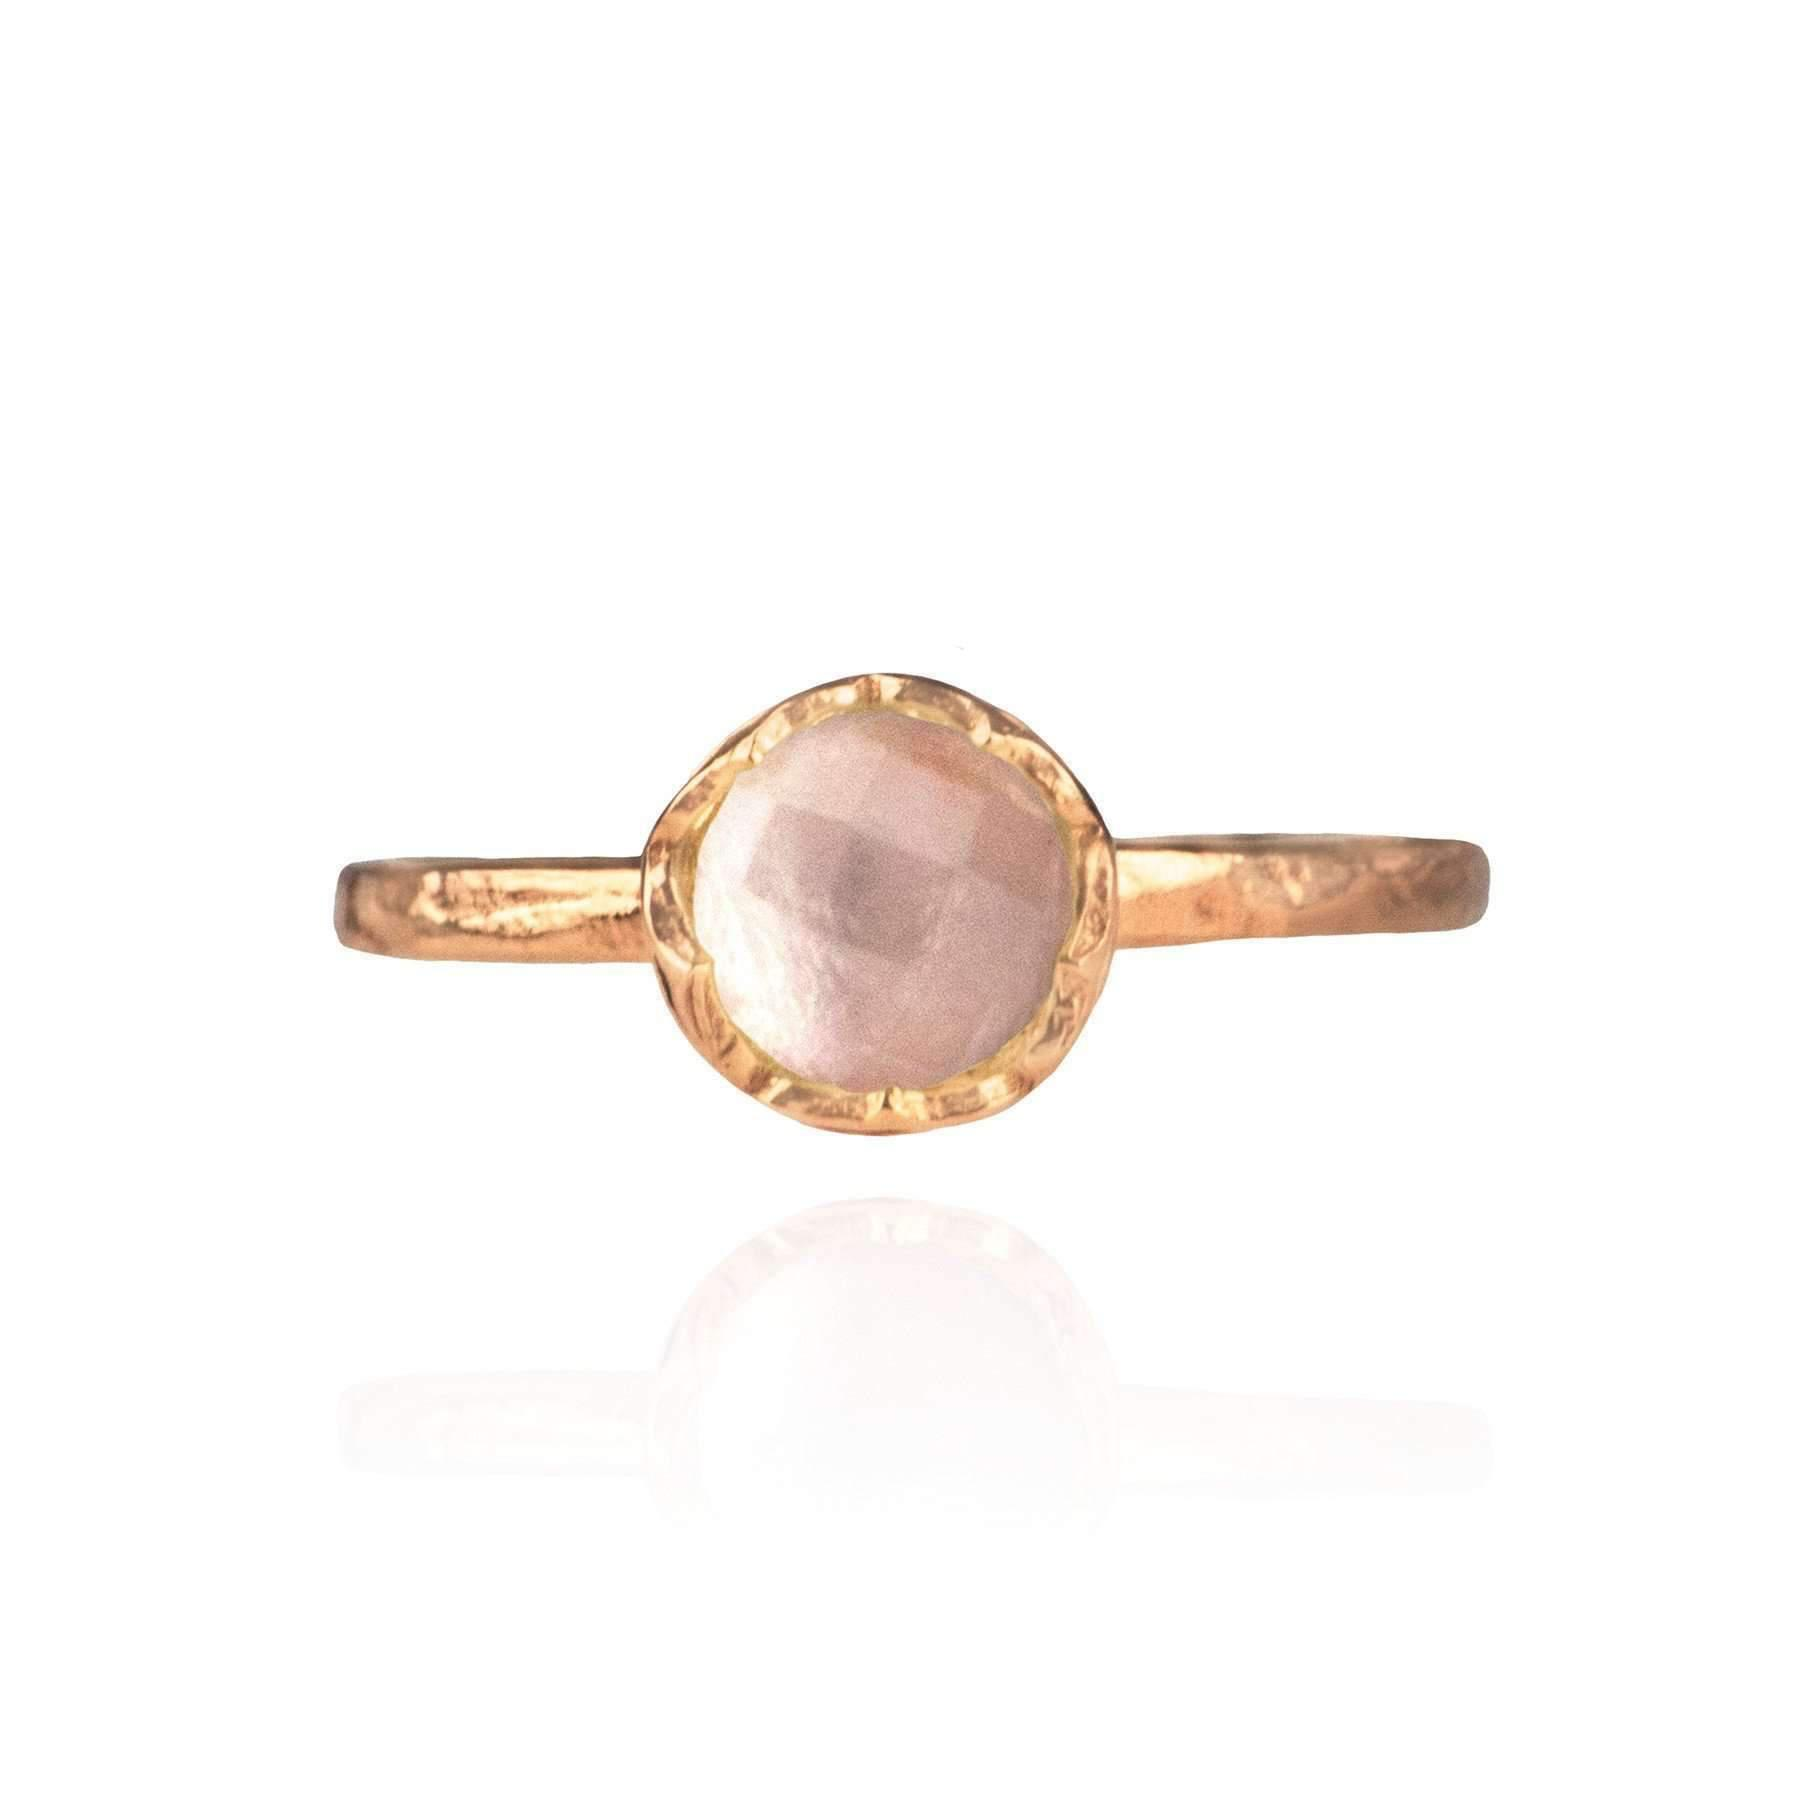 Zefyr Dosha Ring Rose Gold With Rose Quartz - UK T 1/2 - US 10 - EU 62 1/4 z36l4